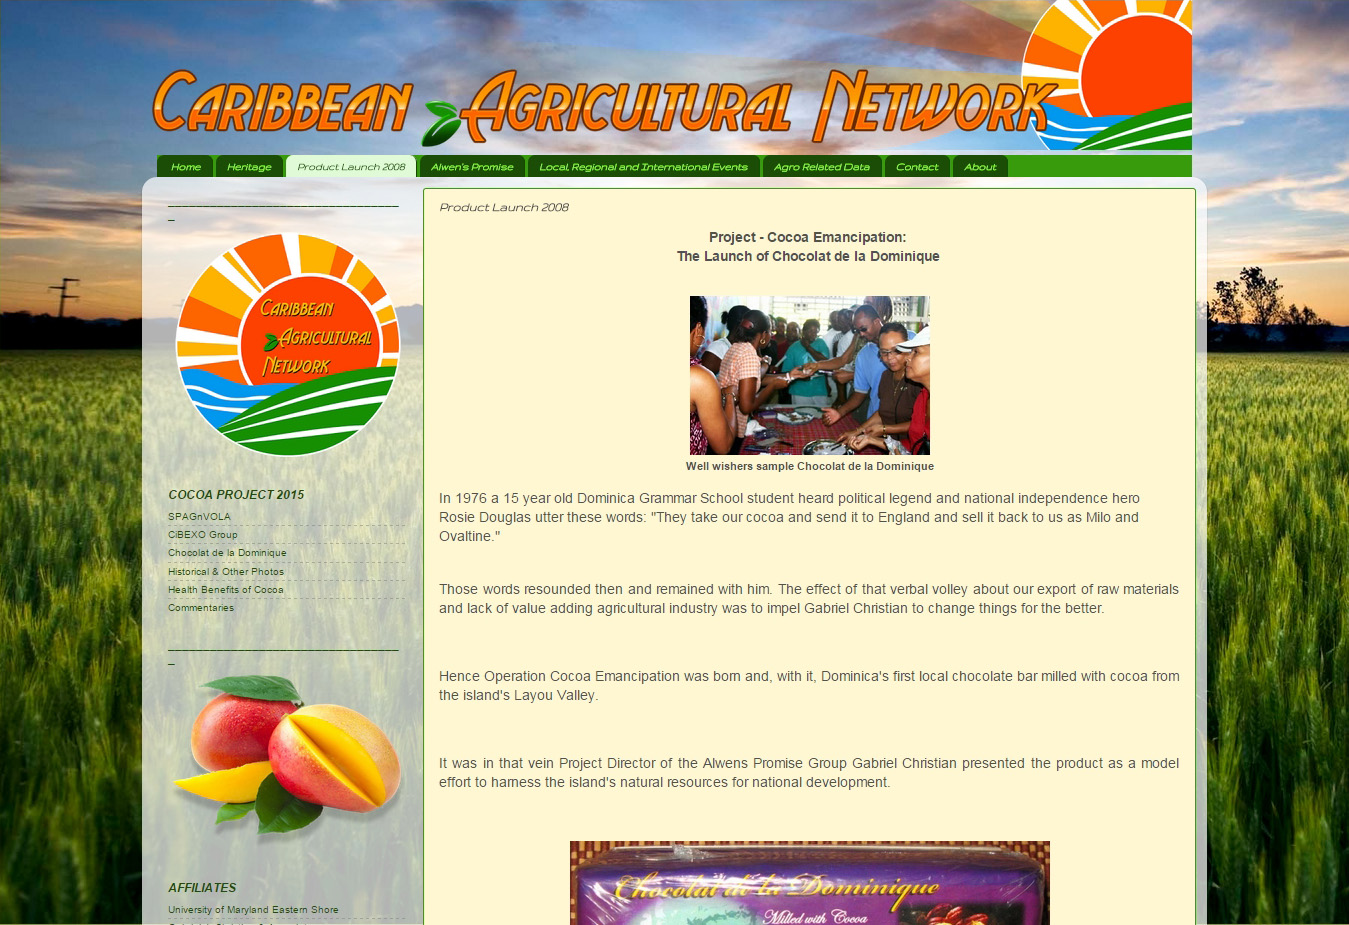 Caribbean Agricultural Network